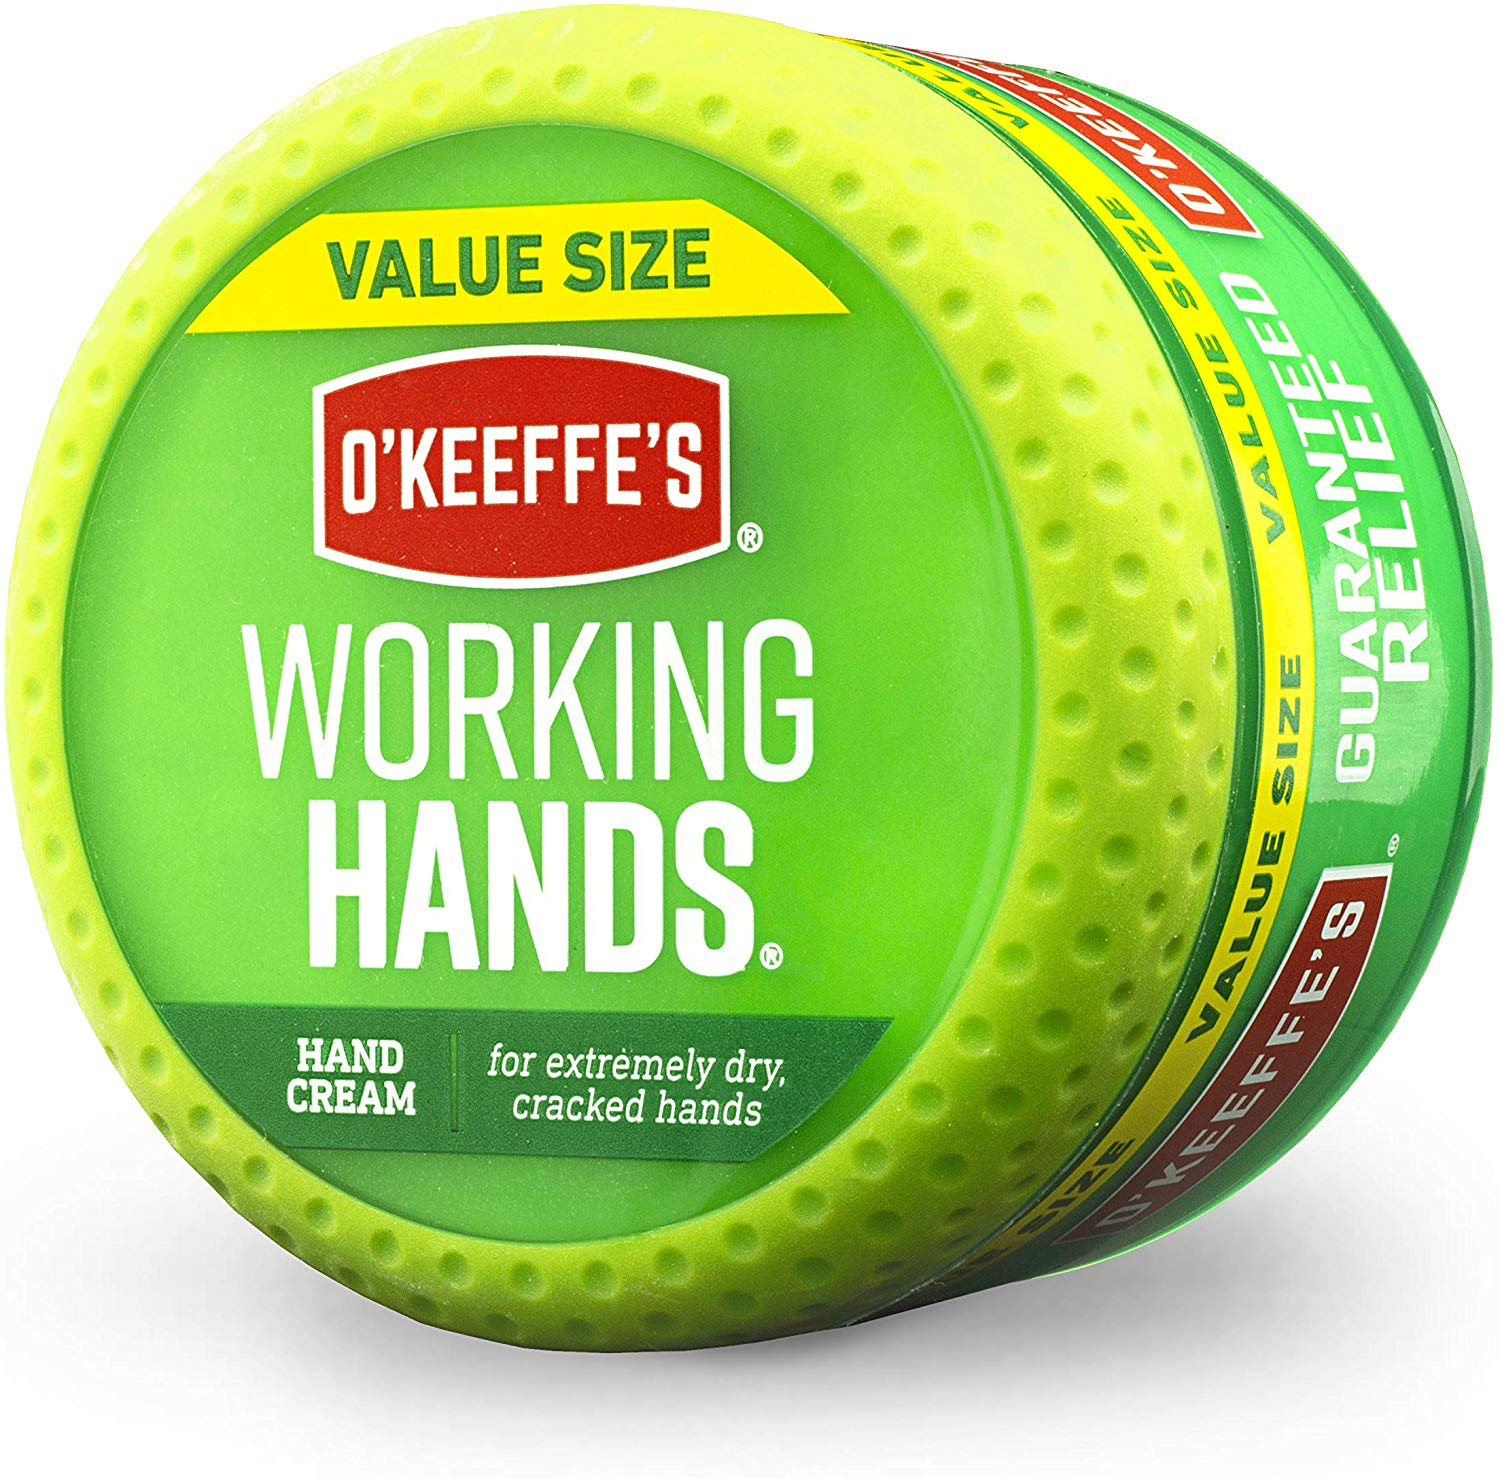 O'Keeffe's Working Hands Value Size Jar,193g for £6.99Prime +4.49 Non Prime on Amazon